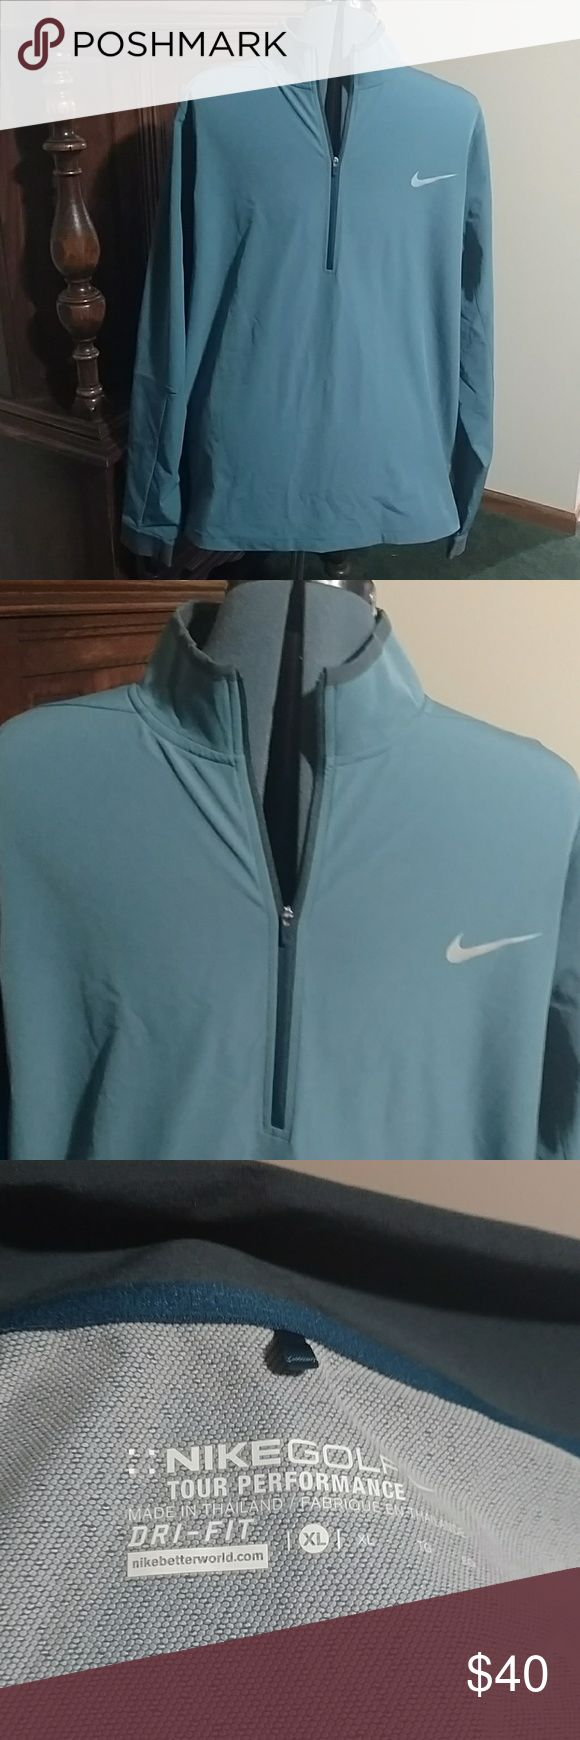 Blue XL Men's Nike Golf Water Resistant Jacket *P* Lightweight, half zip jacket. This XL jacket was worn only once and is in New condition. Quarter zip factor gives it a handsome touch. Goes great over a warm sweater or as a light duty protective layer on a warm rainy day. It's still breathable while repelling drizzle and light rain. This is a premium item Nike Jackets & Coats Performance Jackets